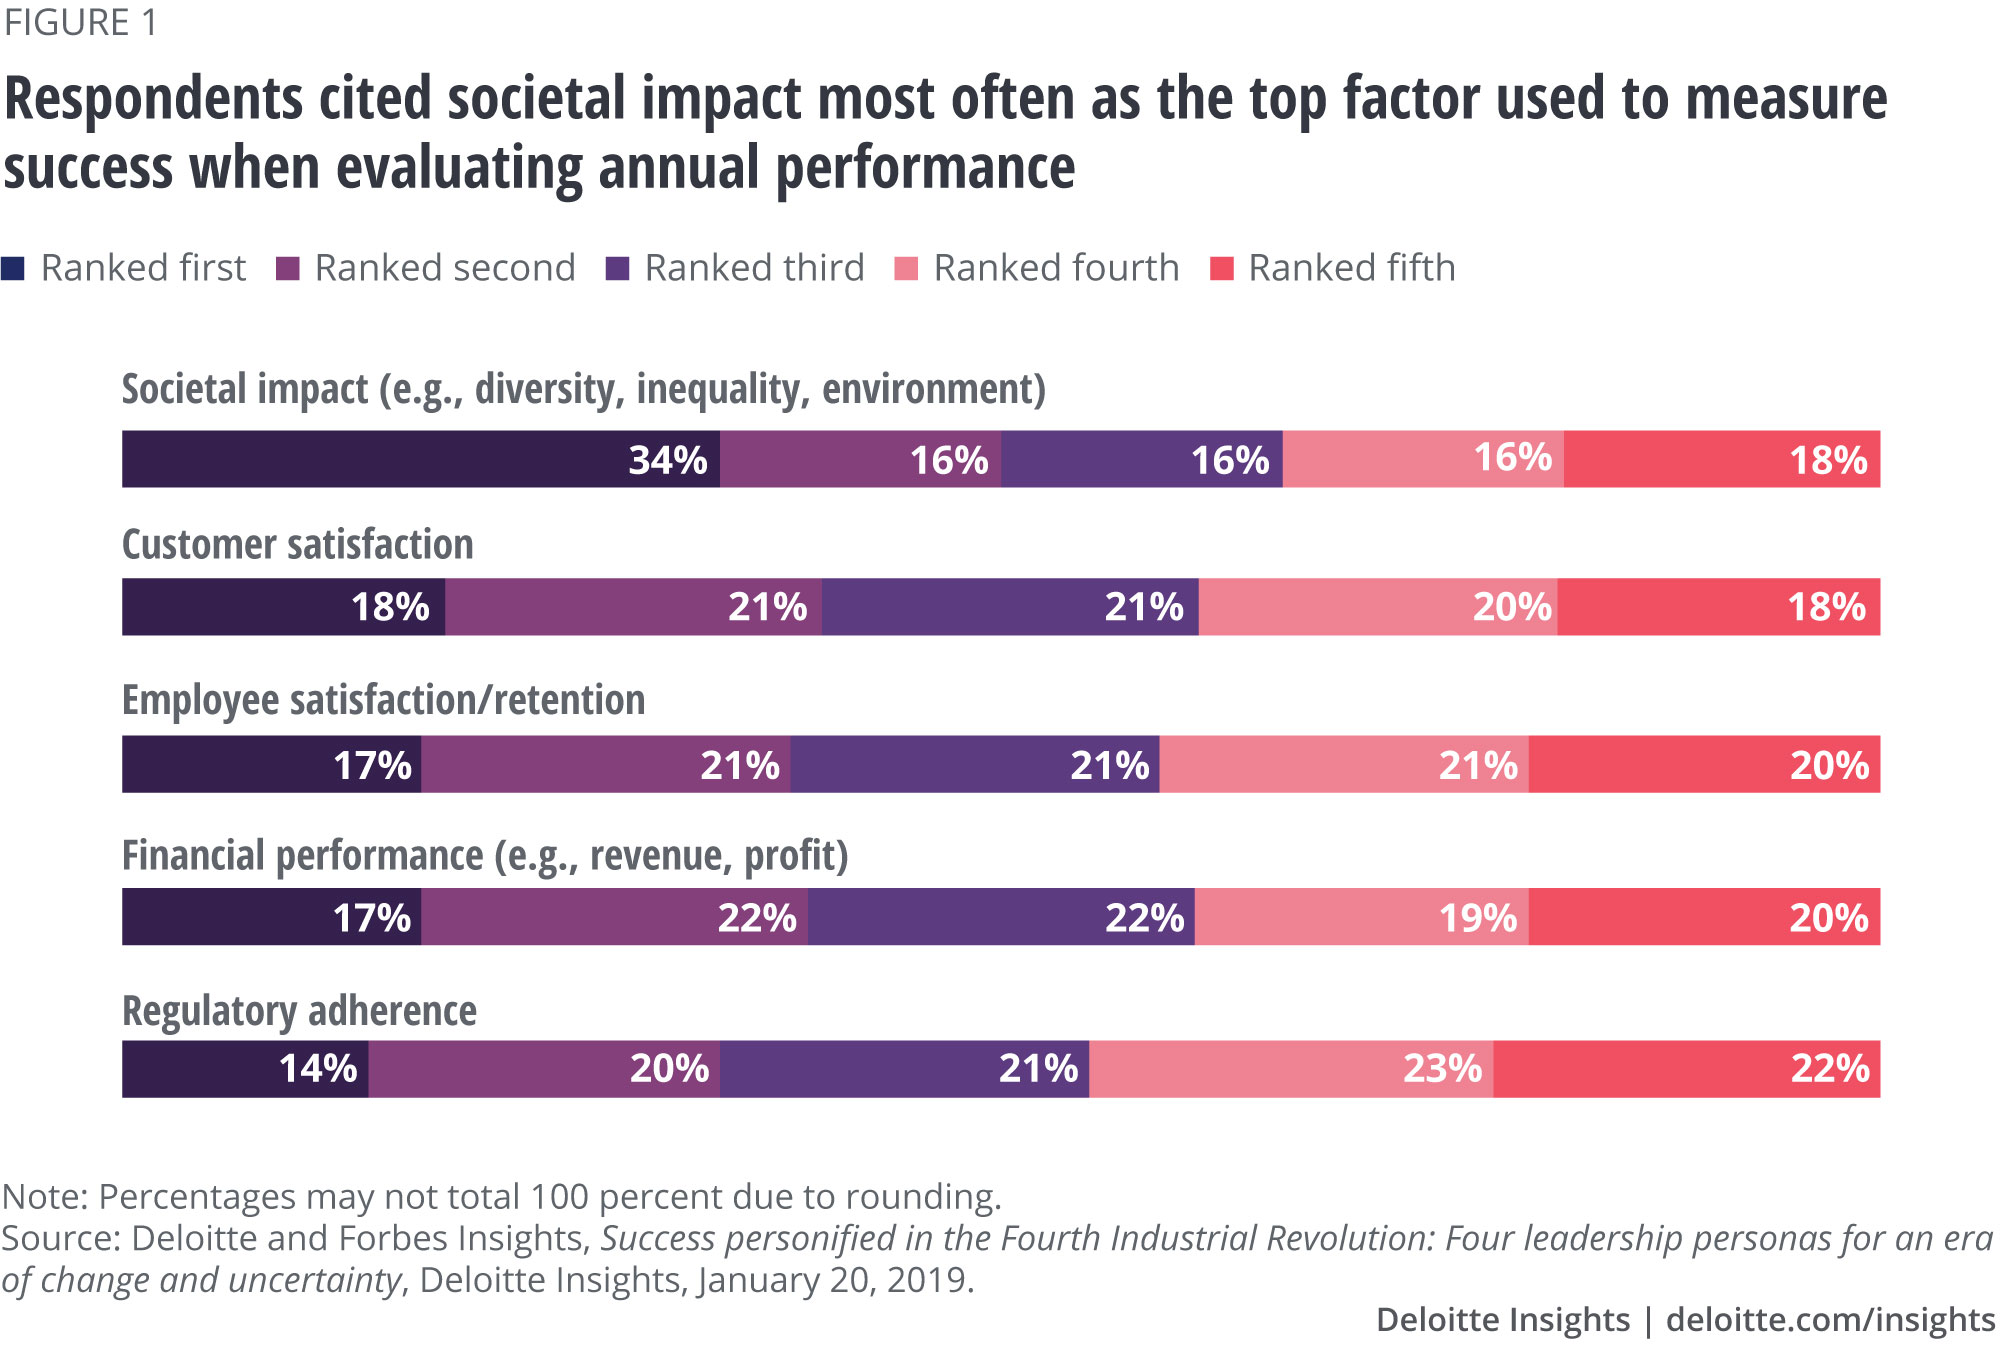 Respondents cited societal impact most often as the top factor used to measure success when evaluating annual performance